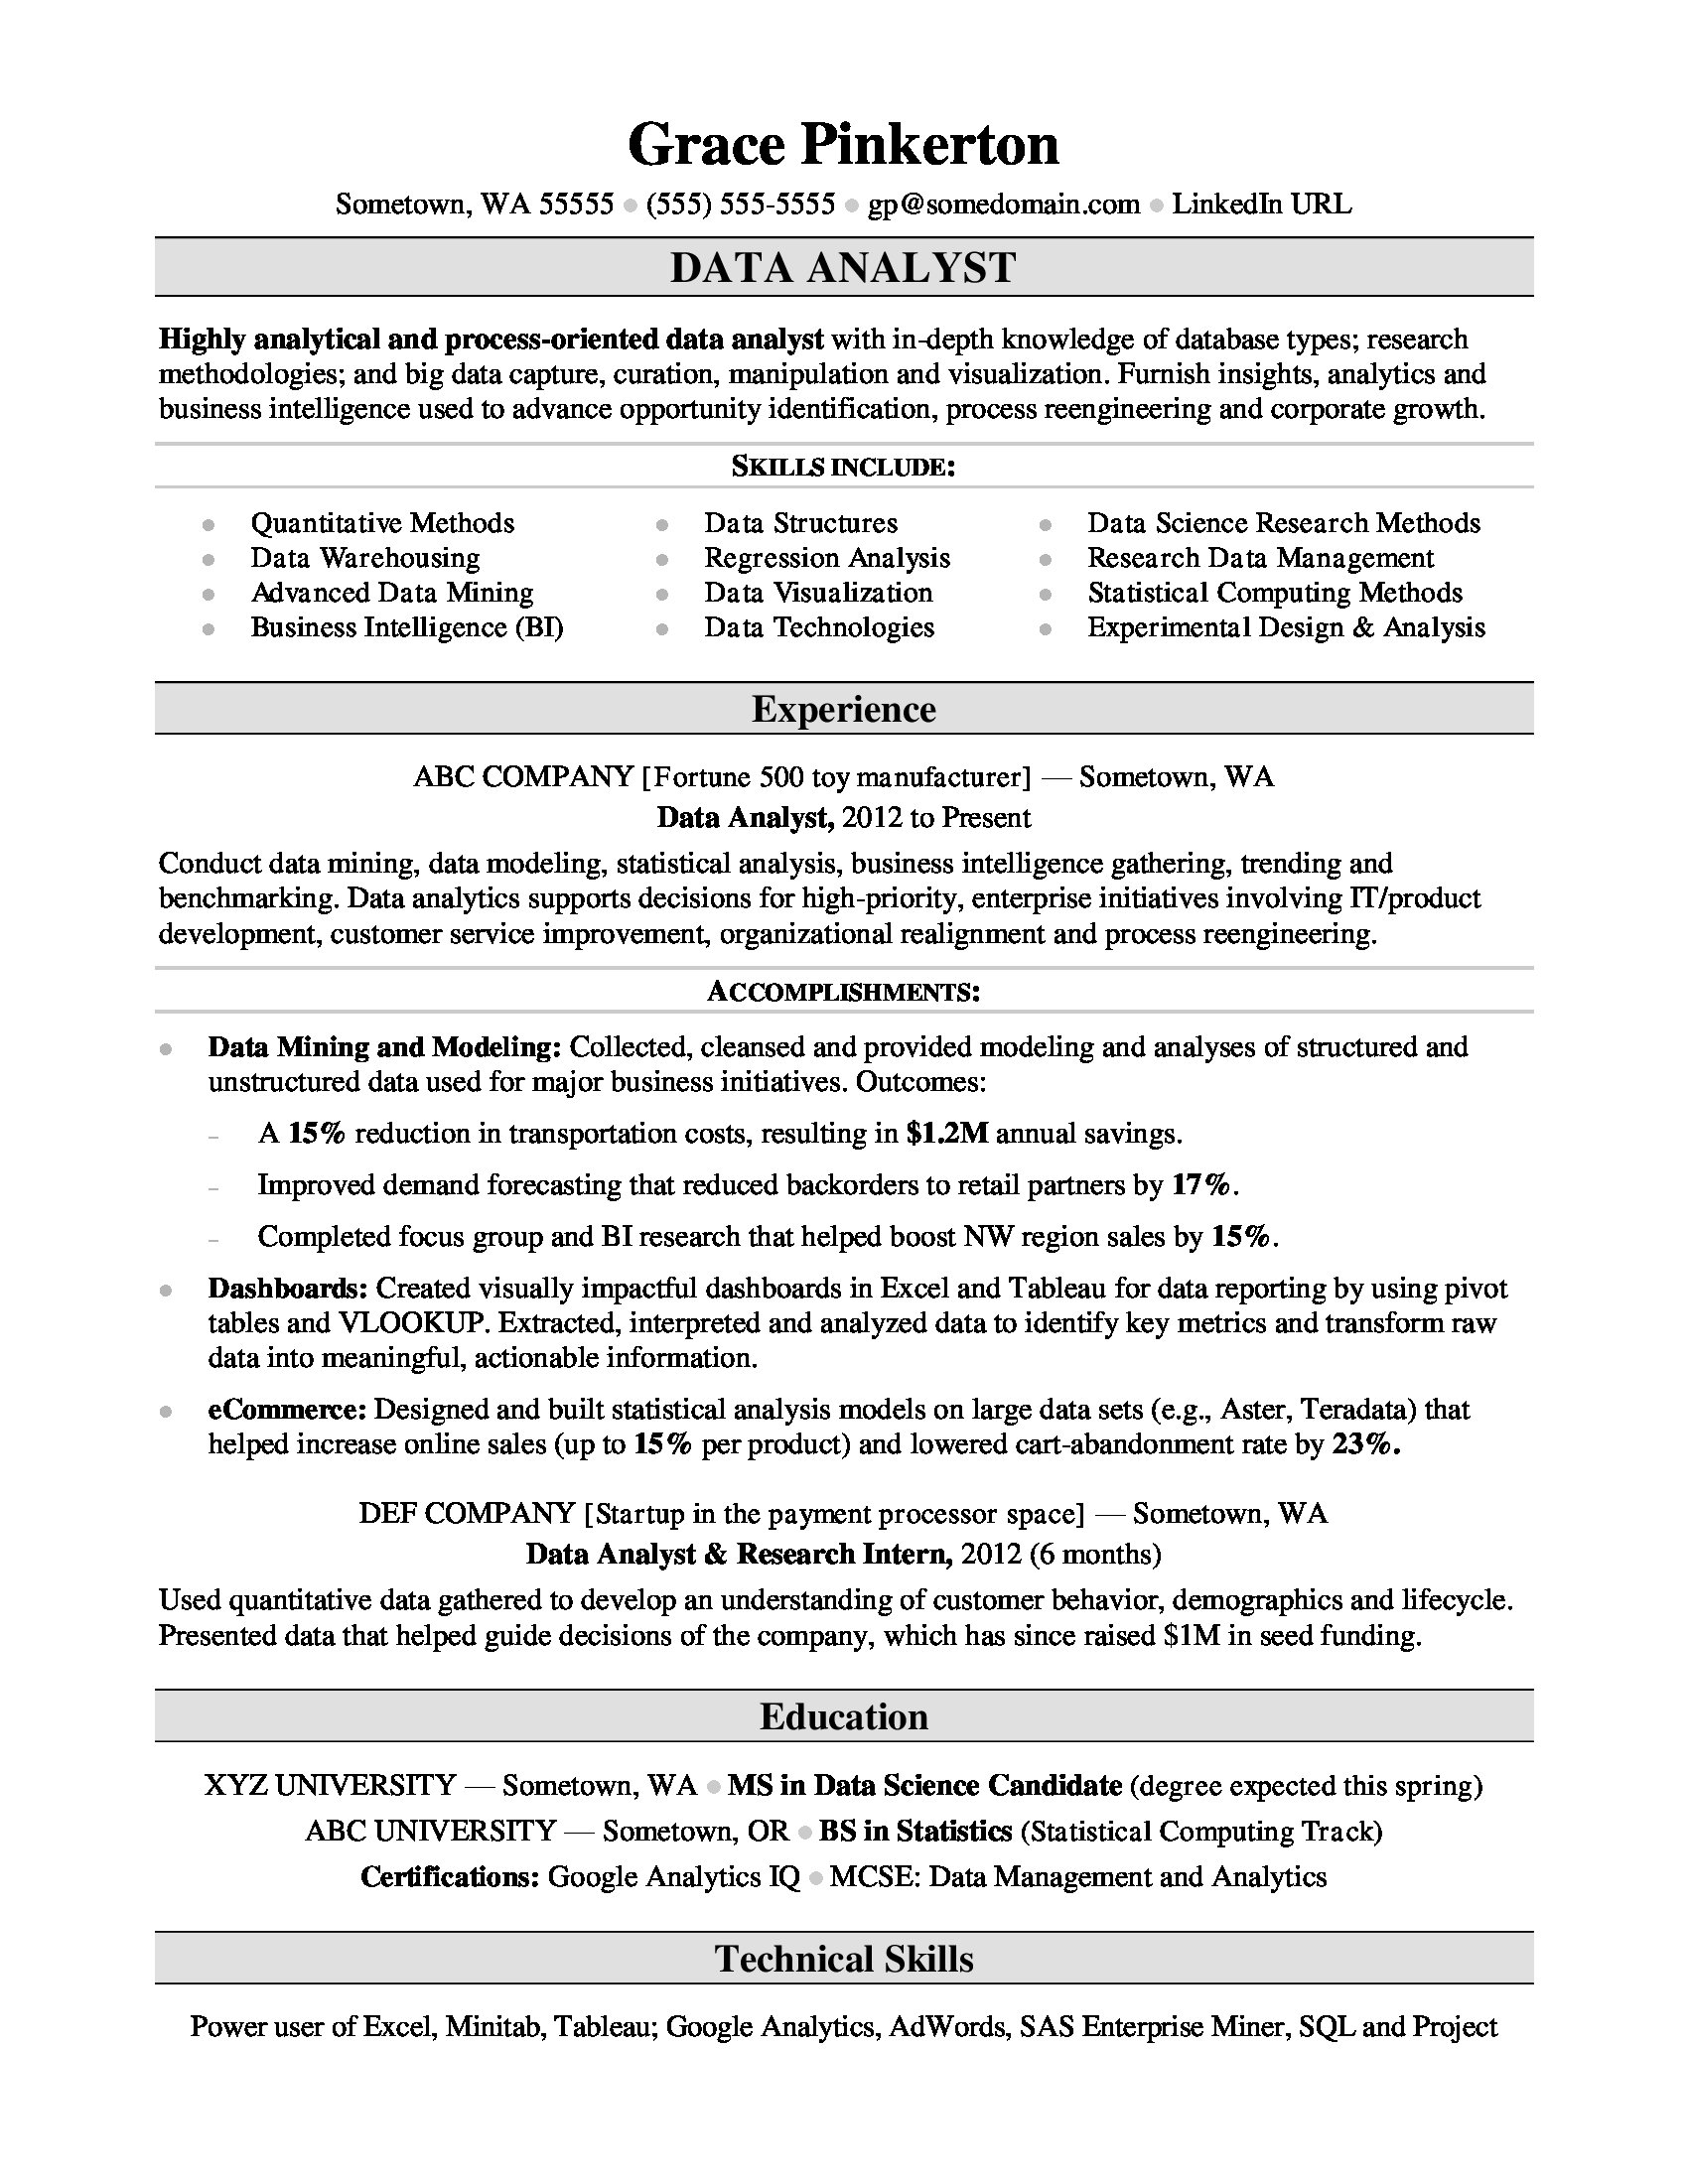 data analyst resume sample monster for google internship dataanalyst of medical assistant Resume Resume For Google Internship